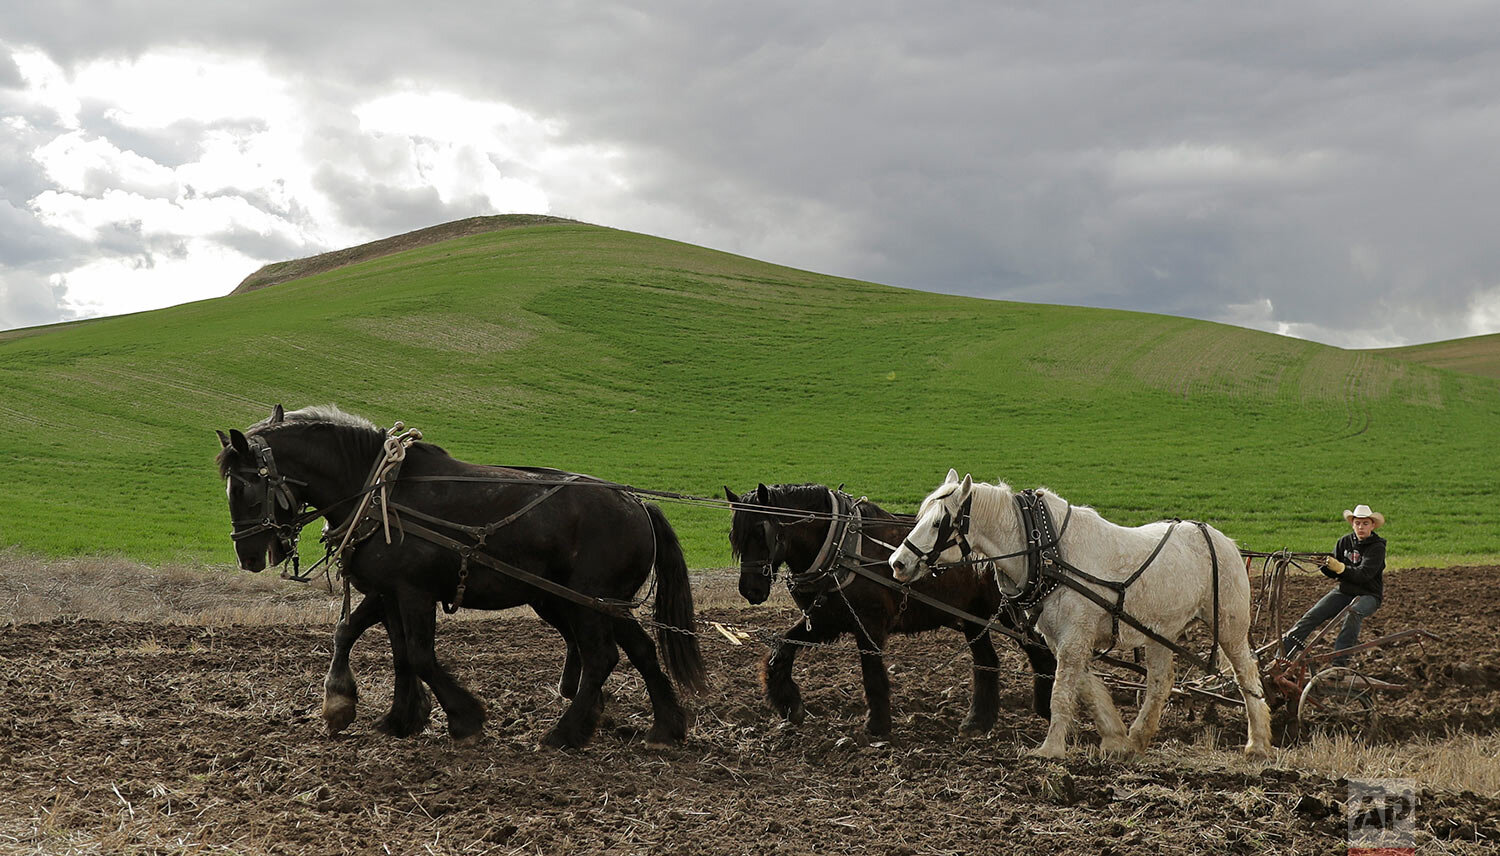 In this April 20, 2019 photo, Brennen Gonzalez, 14, uses a team of draft horses to plow farmland near Colfax, Wash., April 20, 2019. (AP Photo/Ted S. Warren)